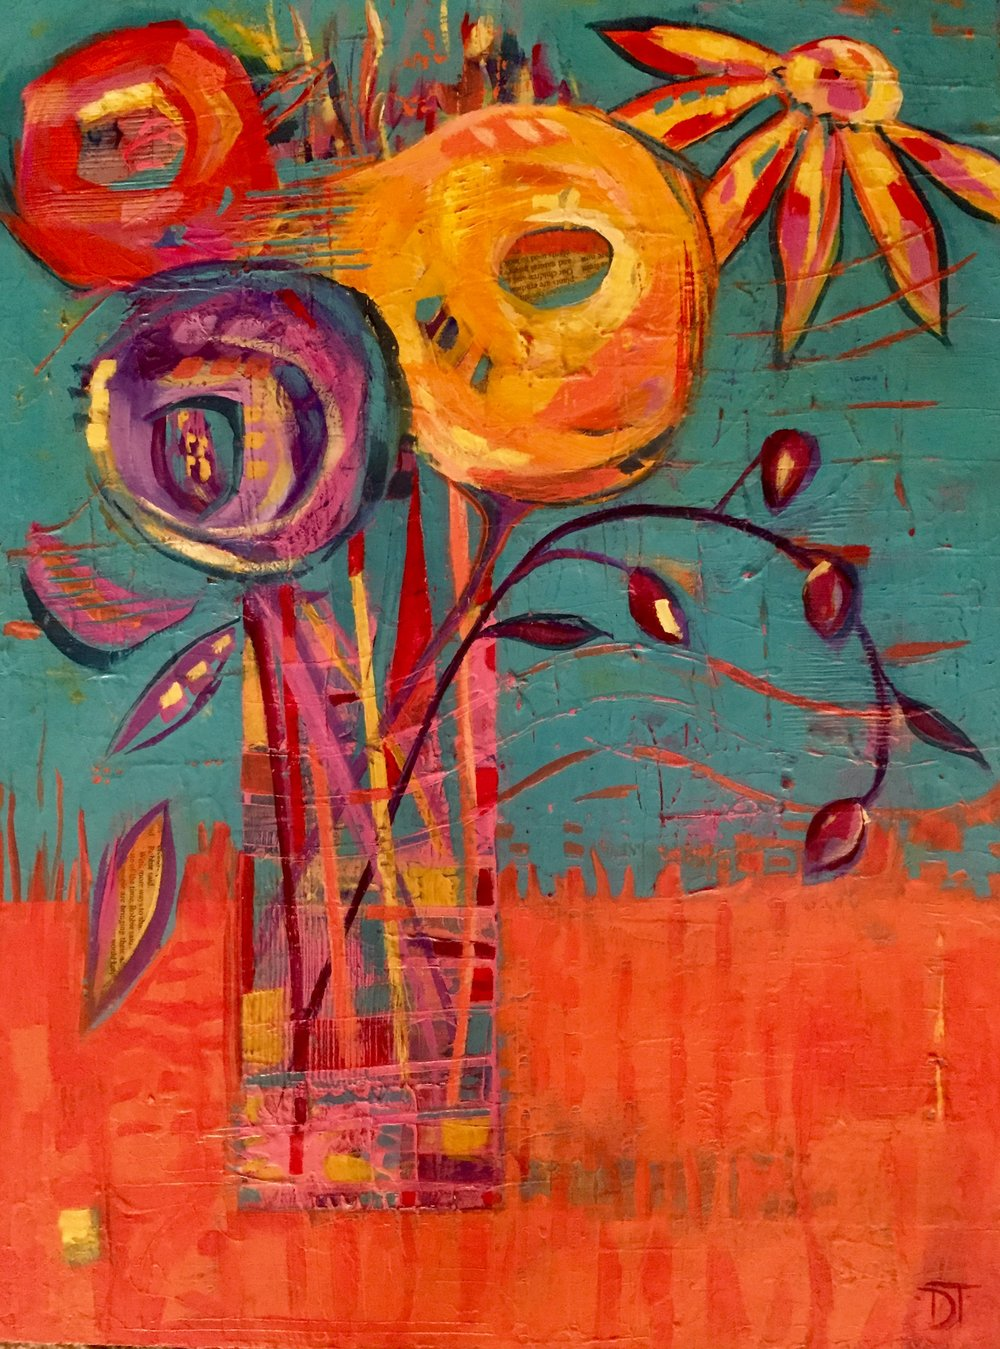 """2018 - Federation of Canadian Artists """"First Place Award"""" for the juried exhibition Spring Palette 2018 show at the Osoyoos Gallery, given for the painting """"Robbie Said""""."""